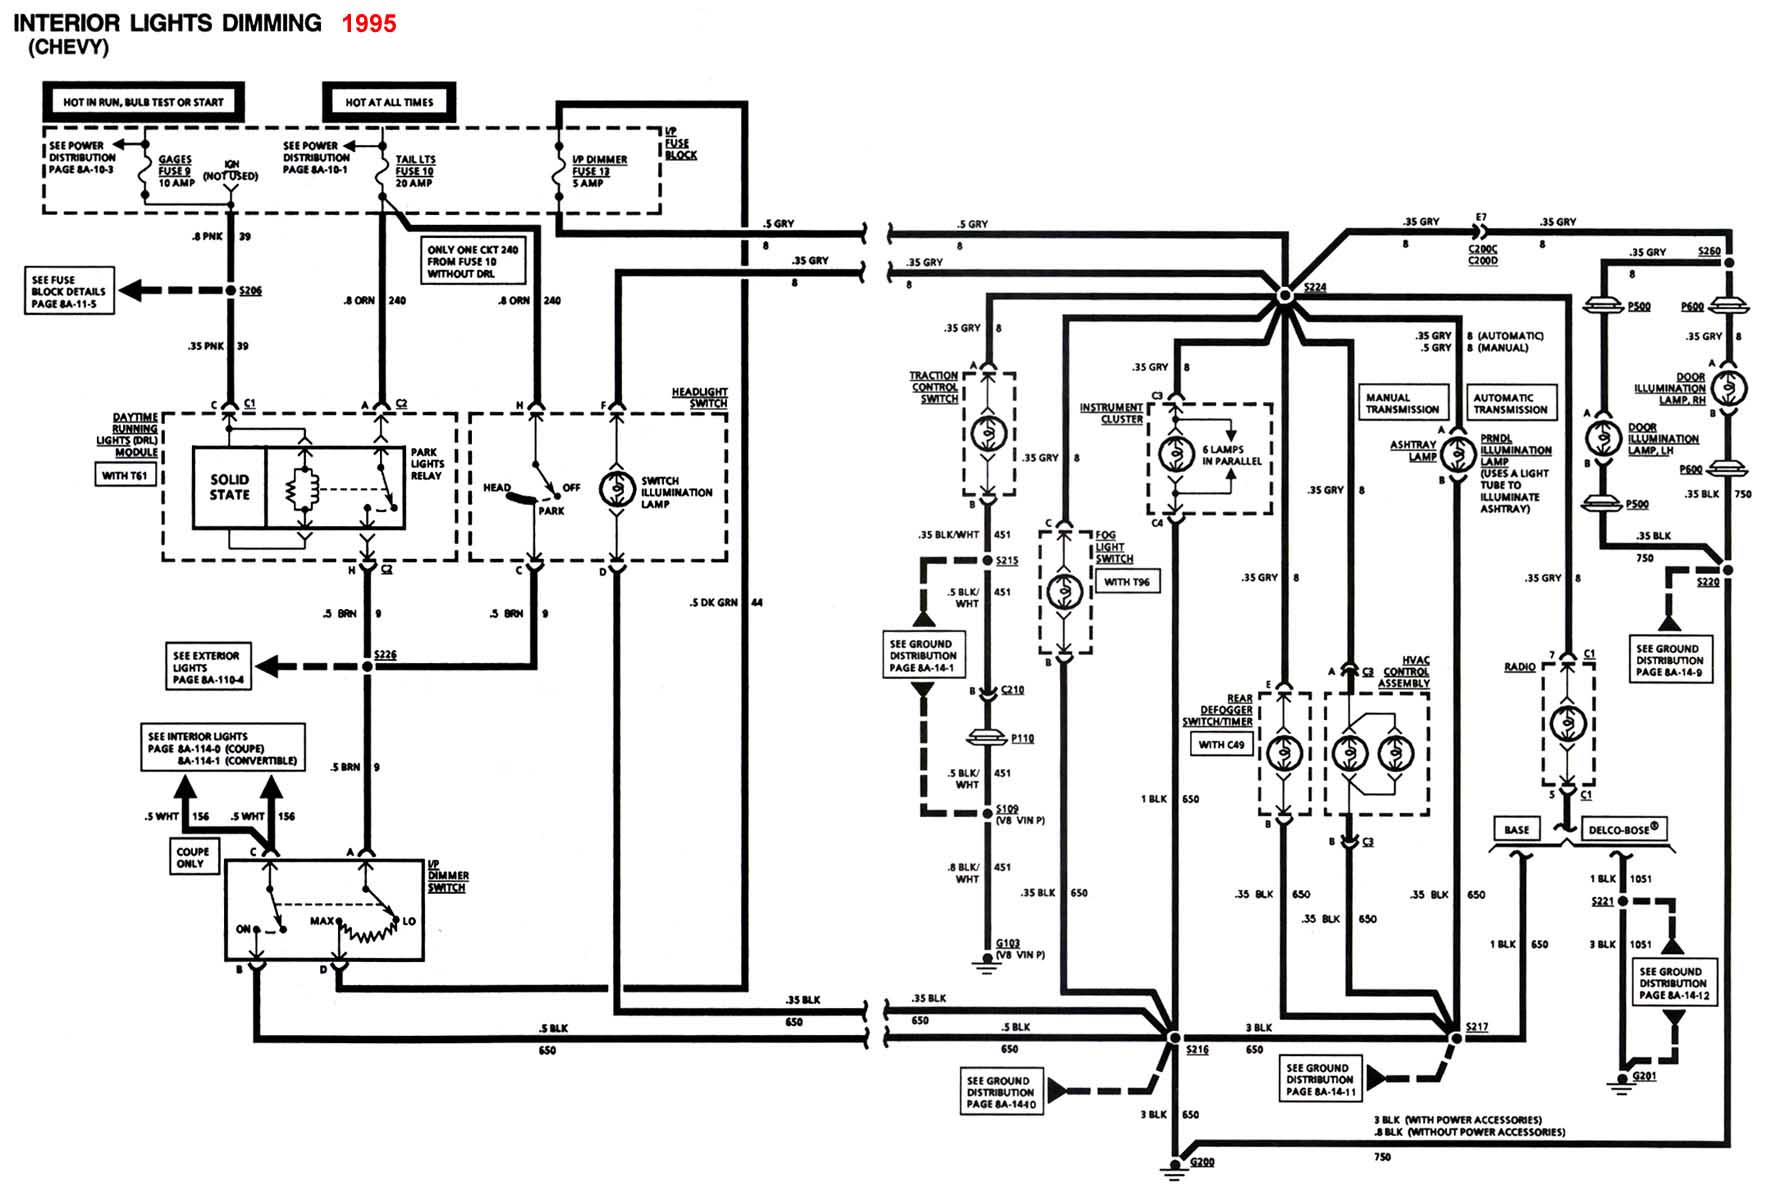 Mitsubishi Minicab U62t Wiring Diagram - Wiring Diagram Schema  bored-guarantee - bored-guarantee.dragomarino.itbored-guarantee.dragomarino.it